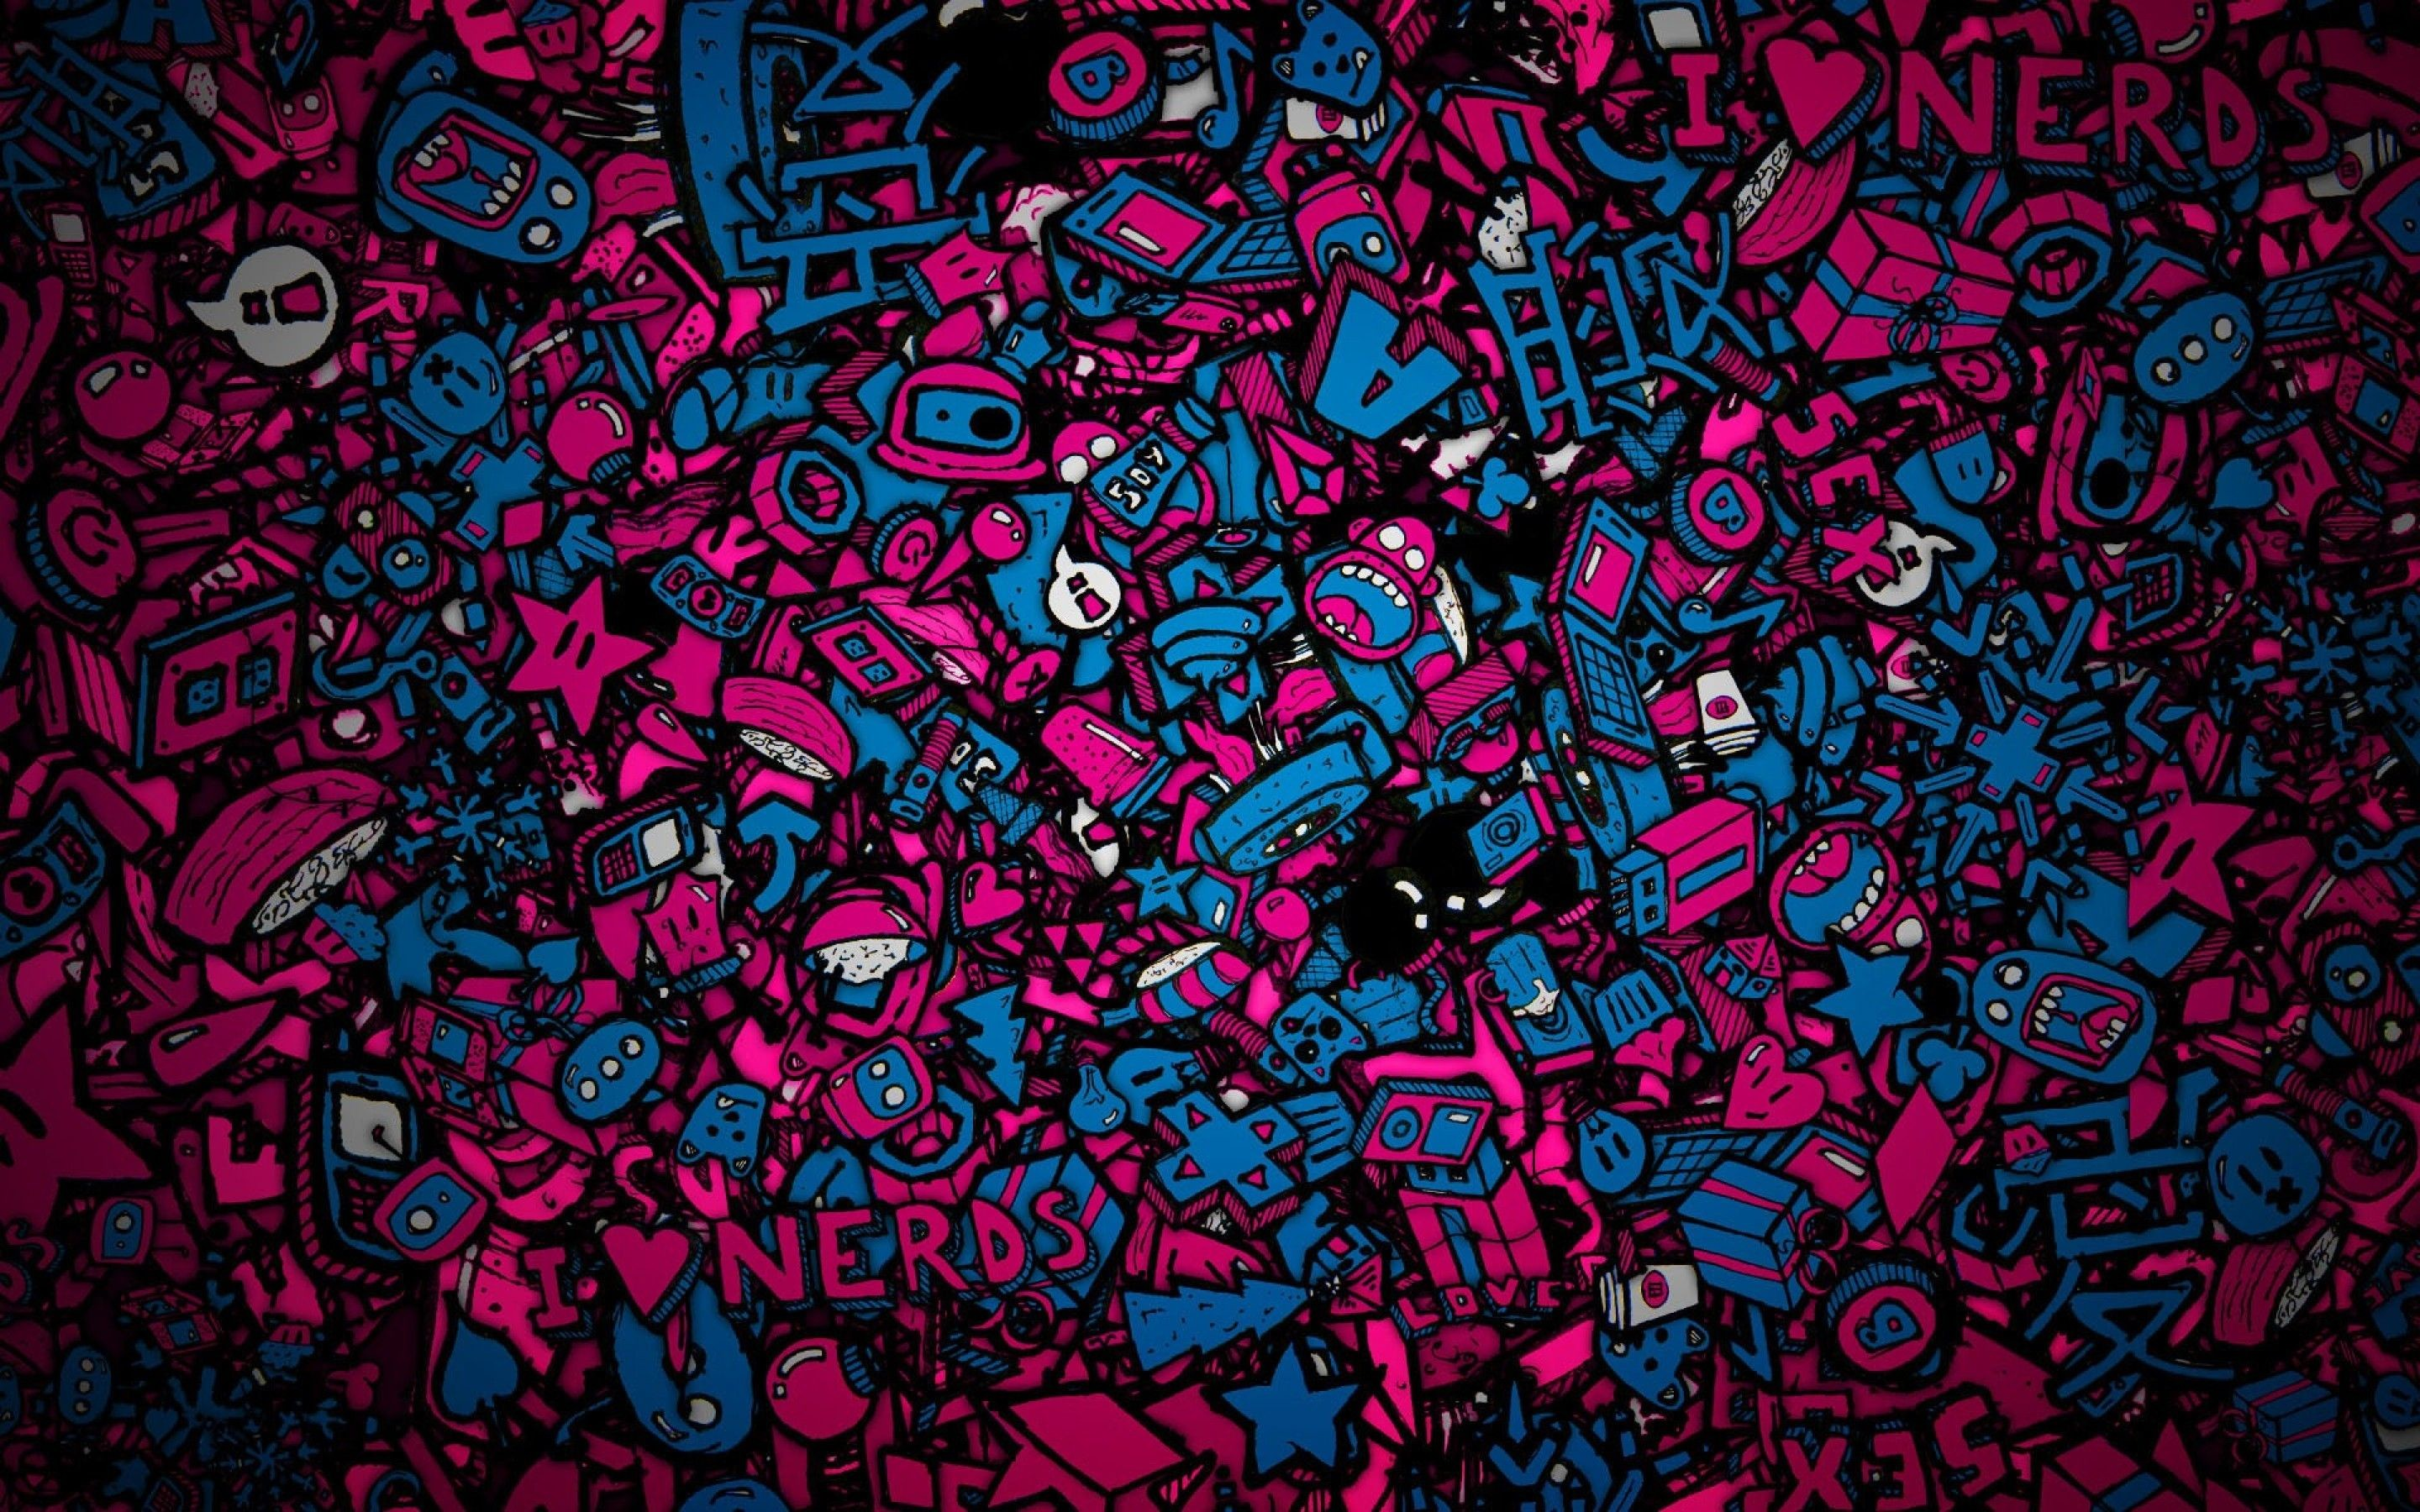 Res: 2880x1800, Colorful Love Nerds WallPaper HD -  http://imashon.com/w/abstract/colorful-love-nerds-wallpaper-hd.html